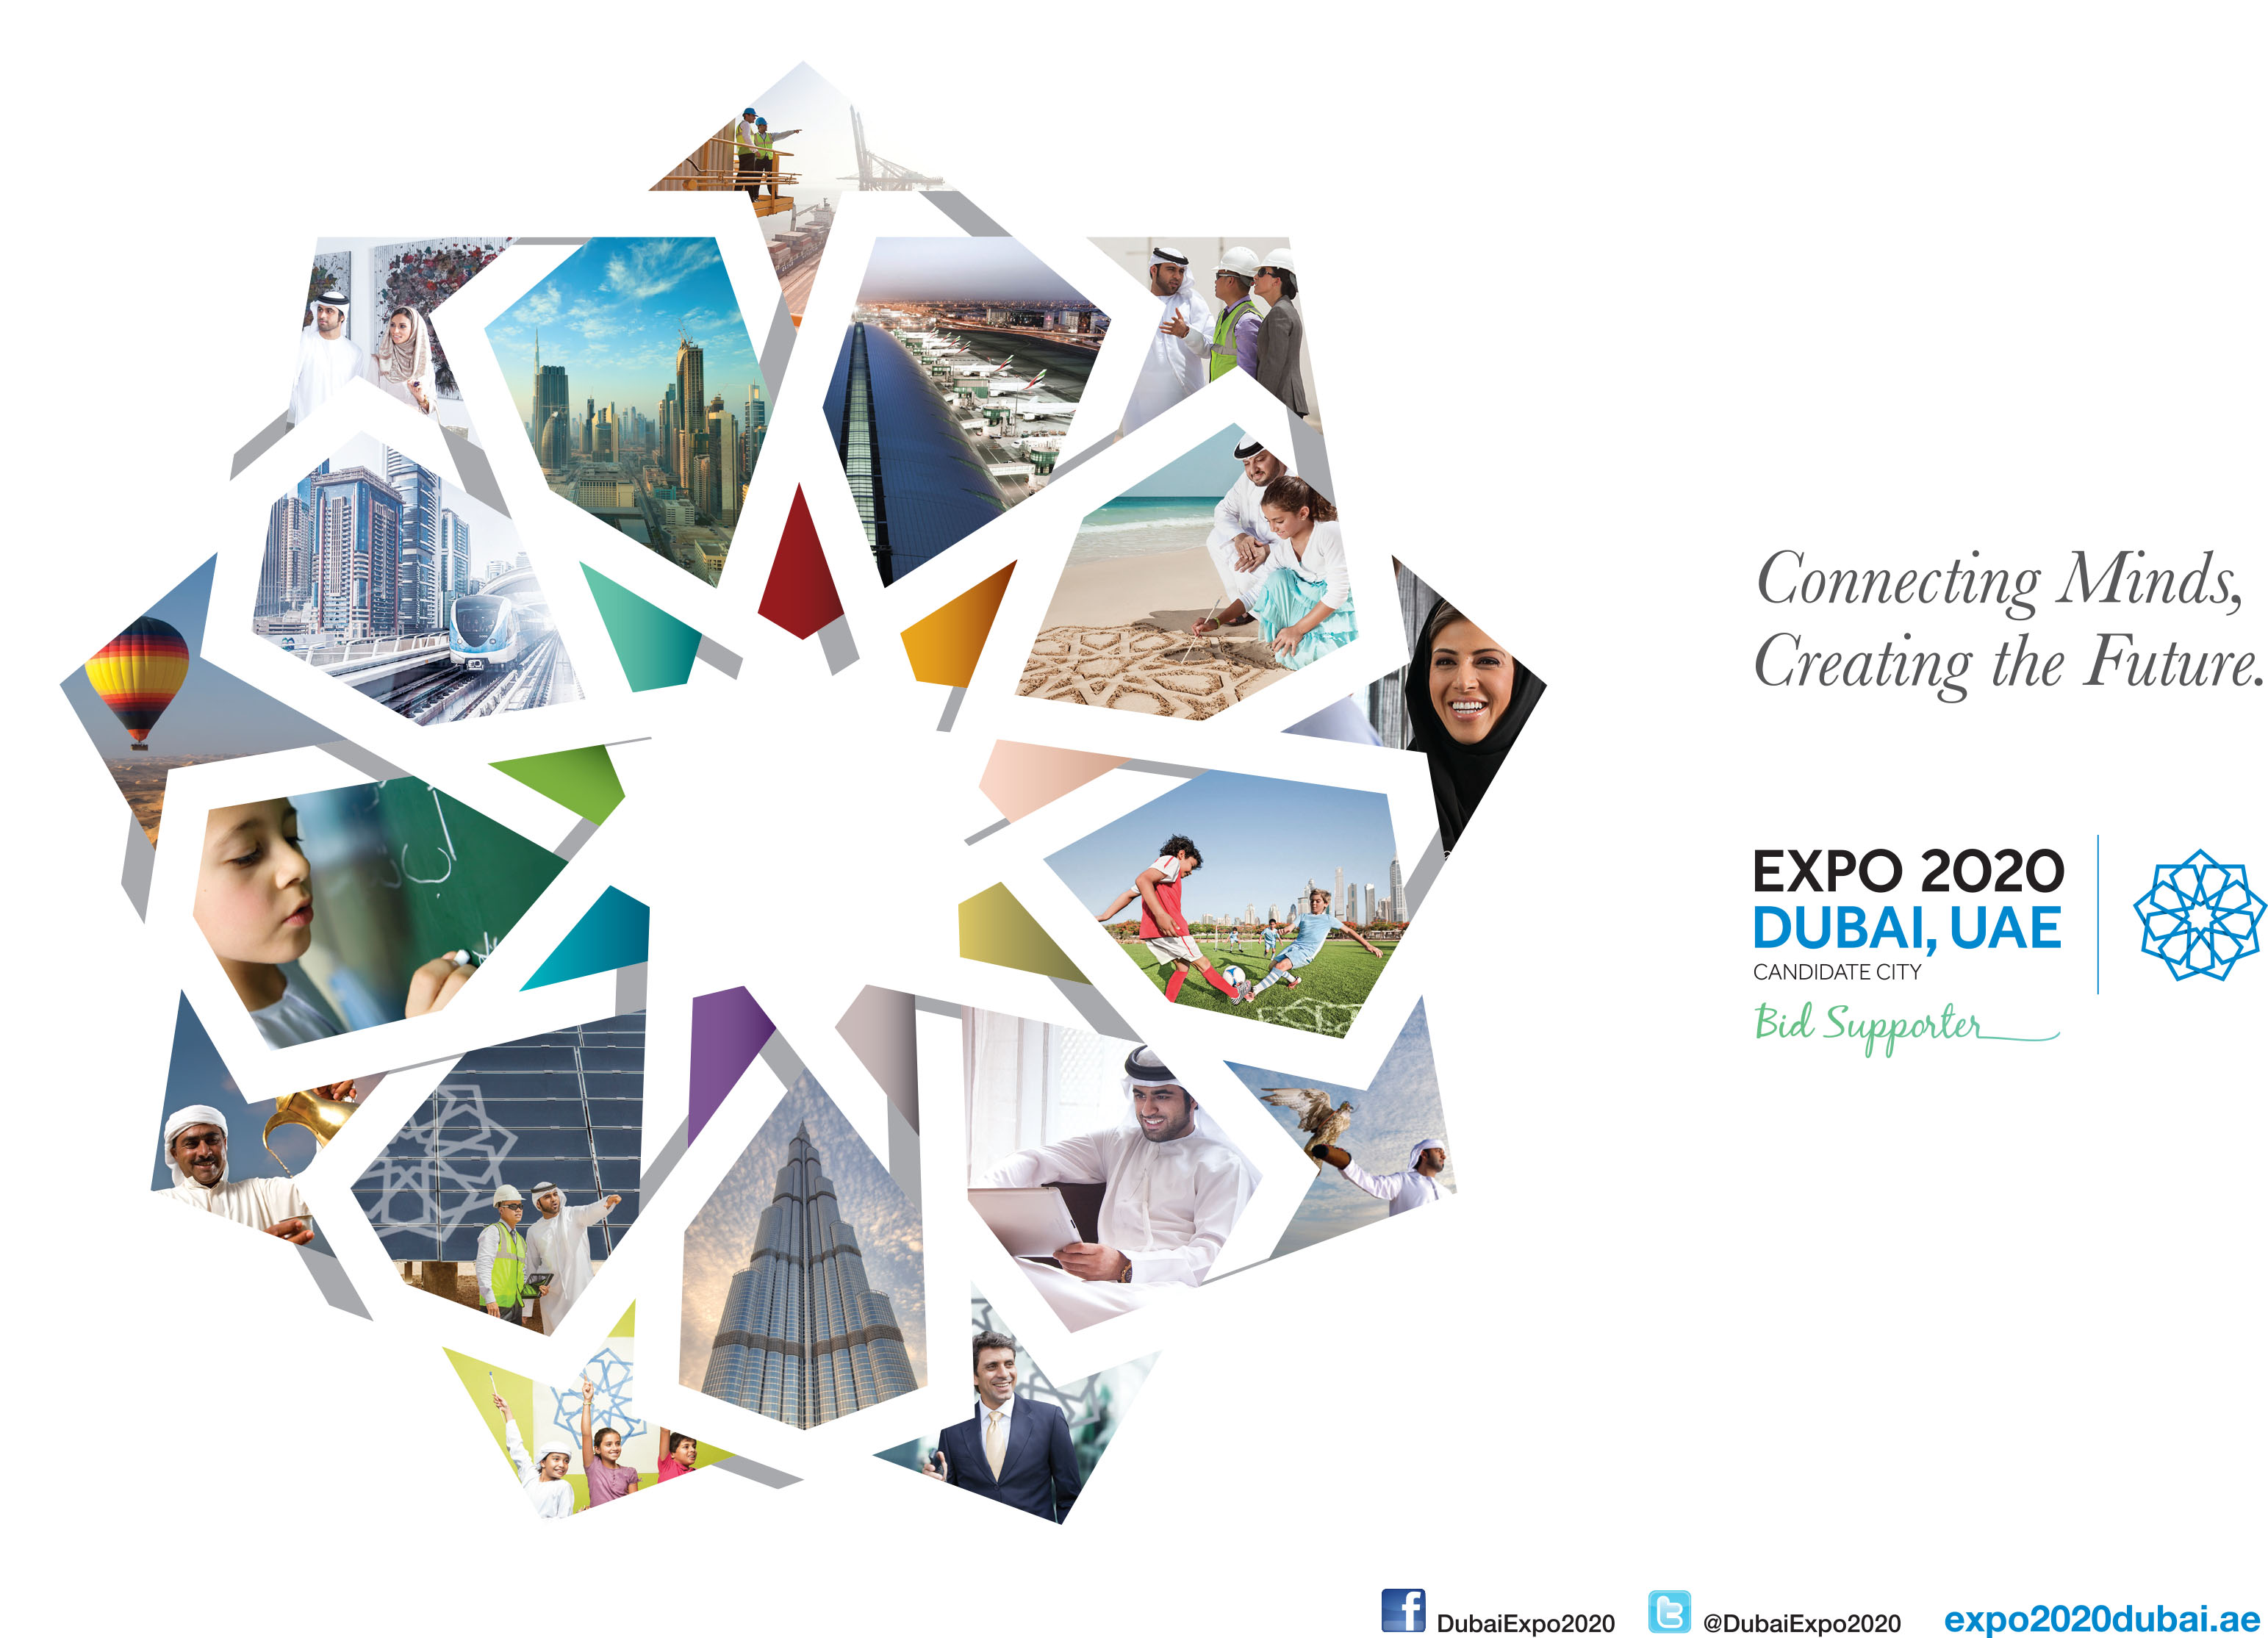 Time of announcement of dubai expo 2020